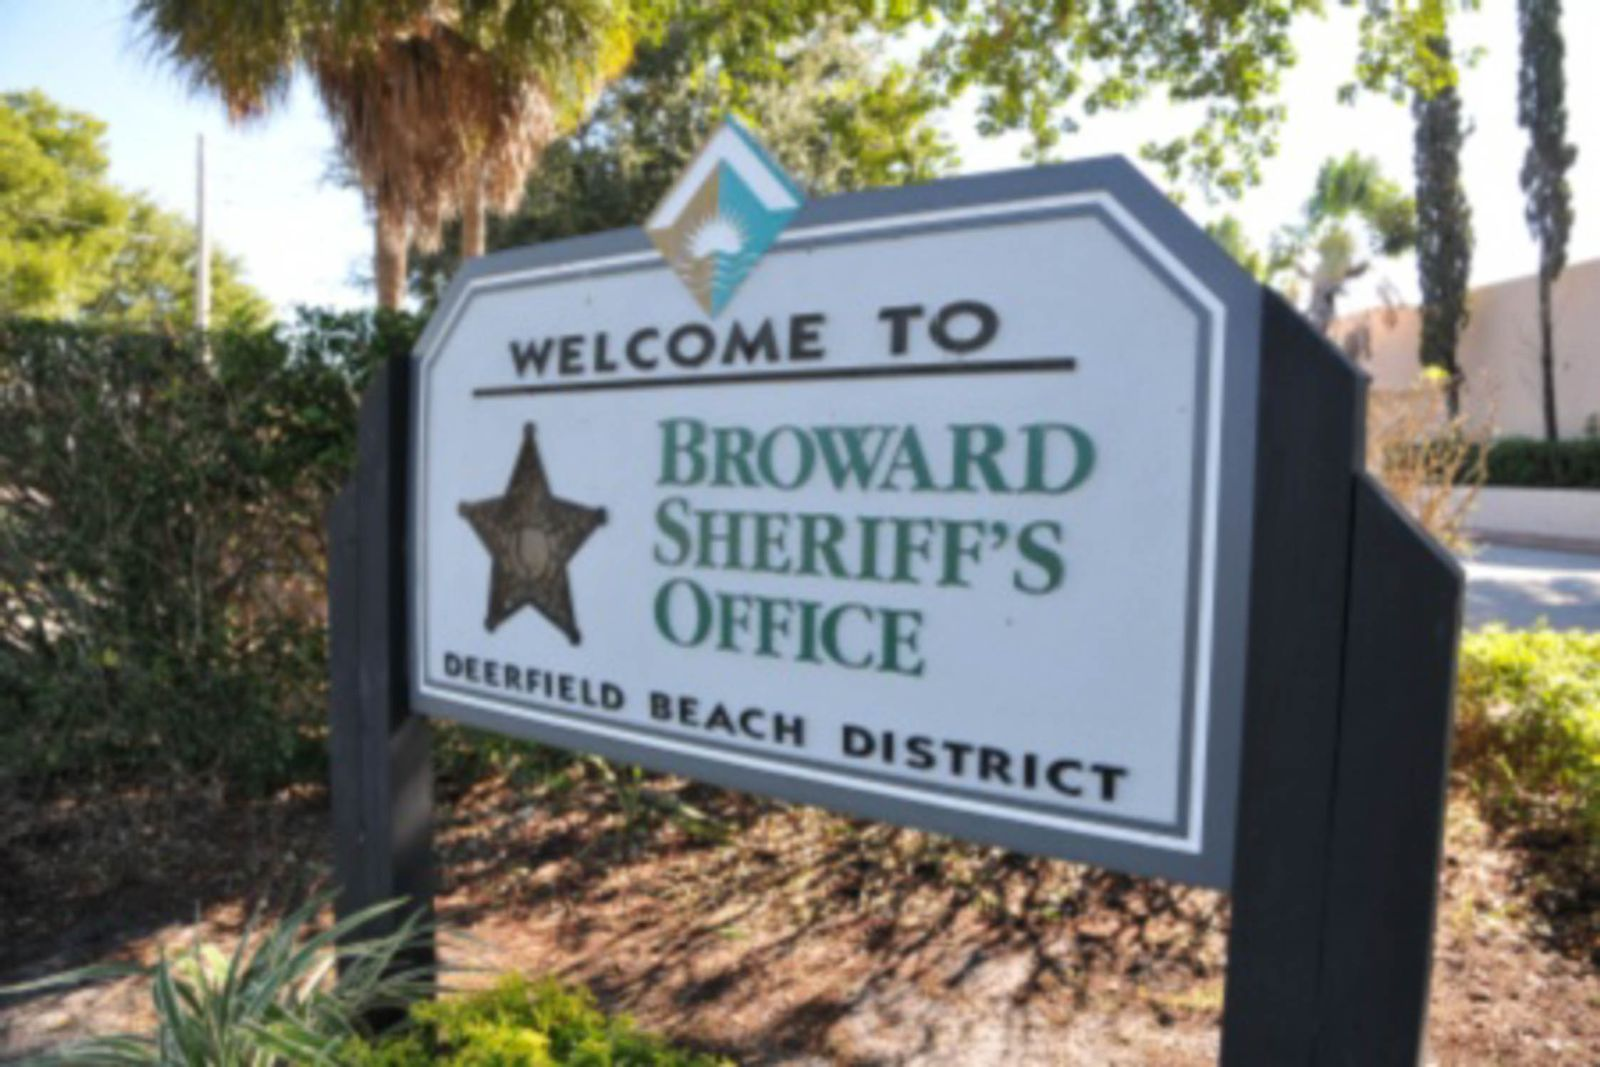 Broward Sheriff's Office district for Deerfield Beach - if facing charges contact a criminal defense attorney